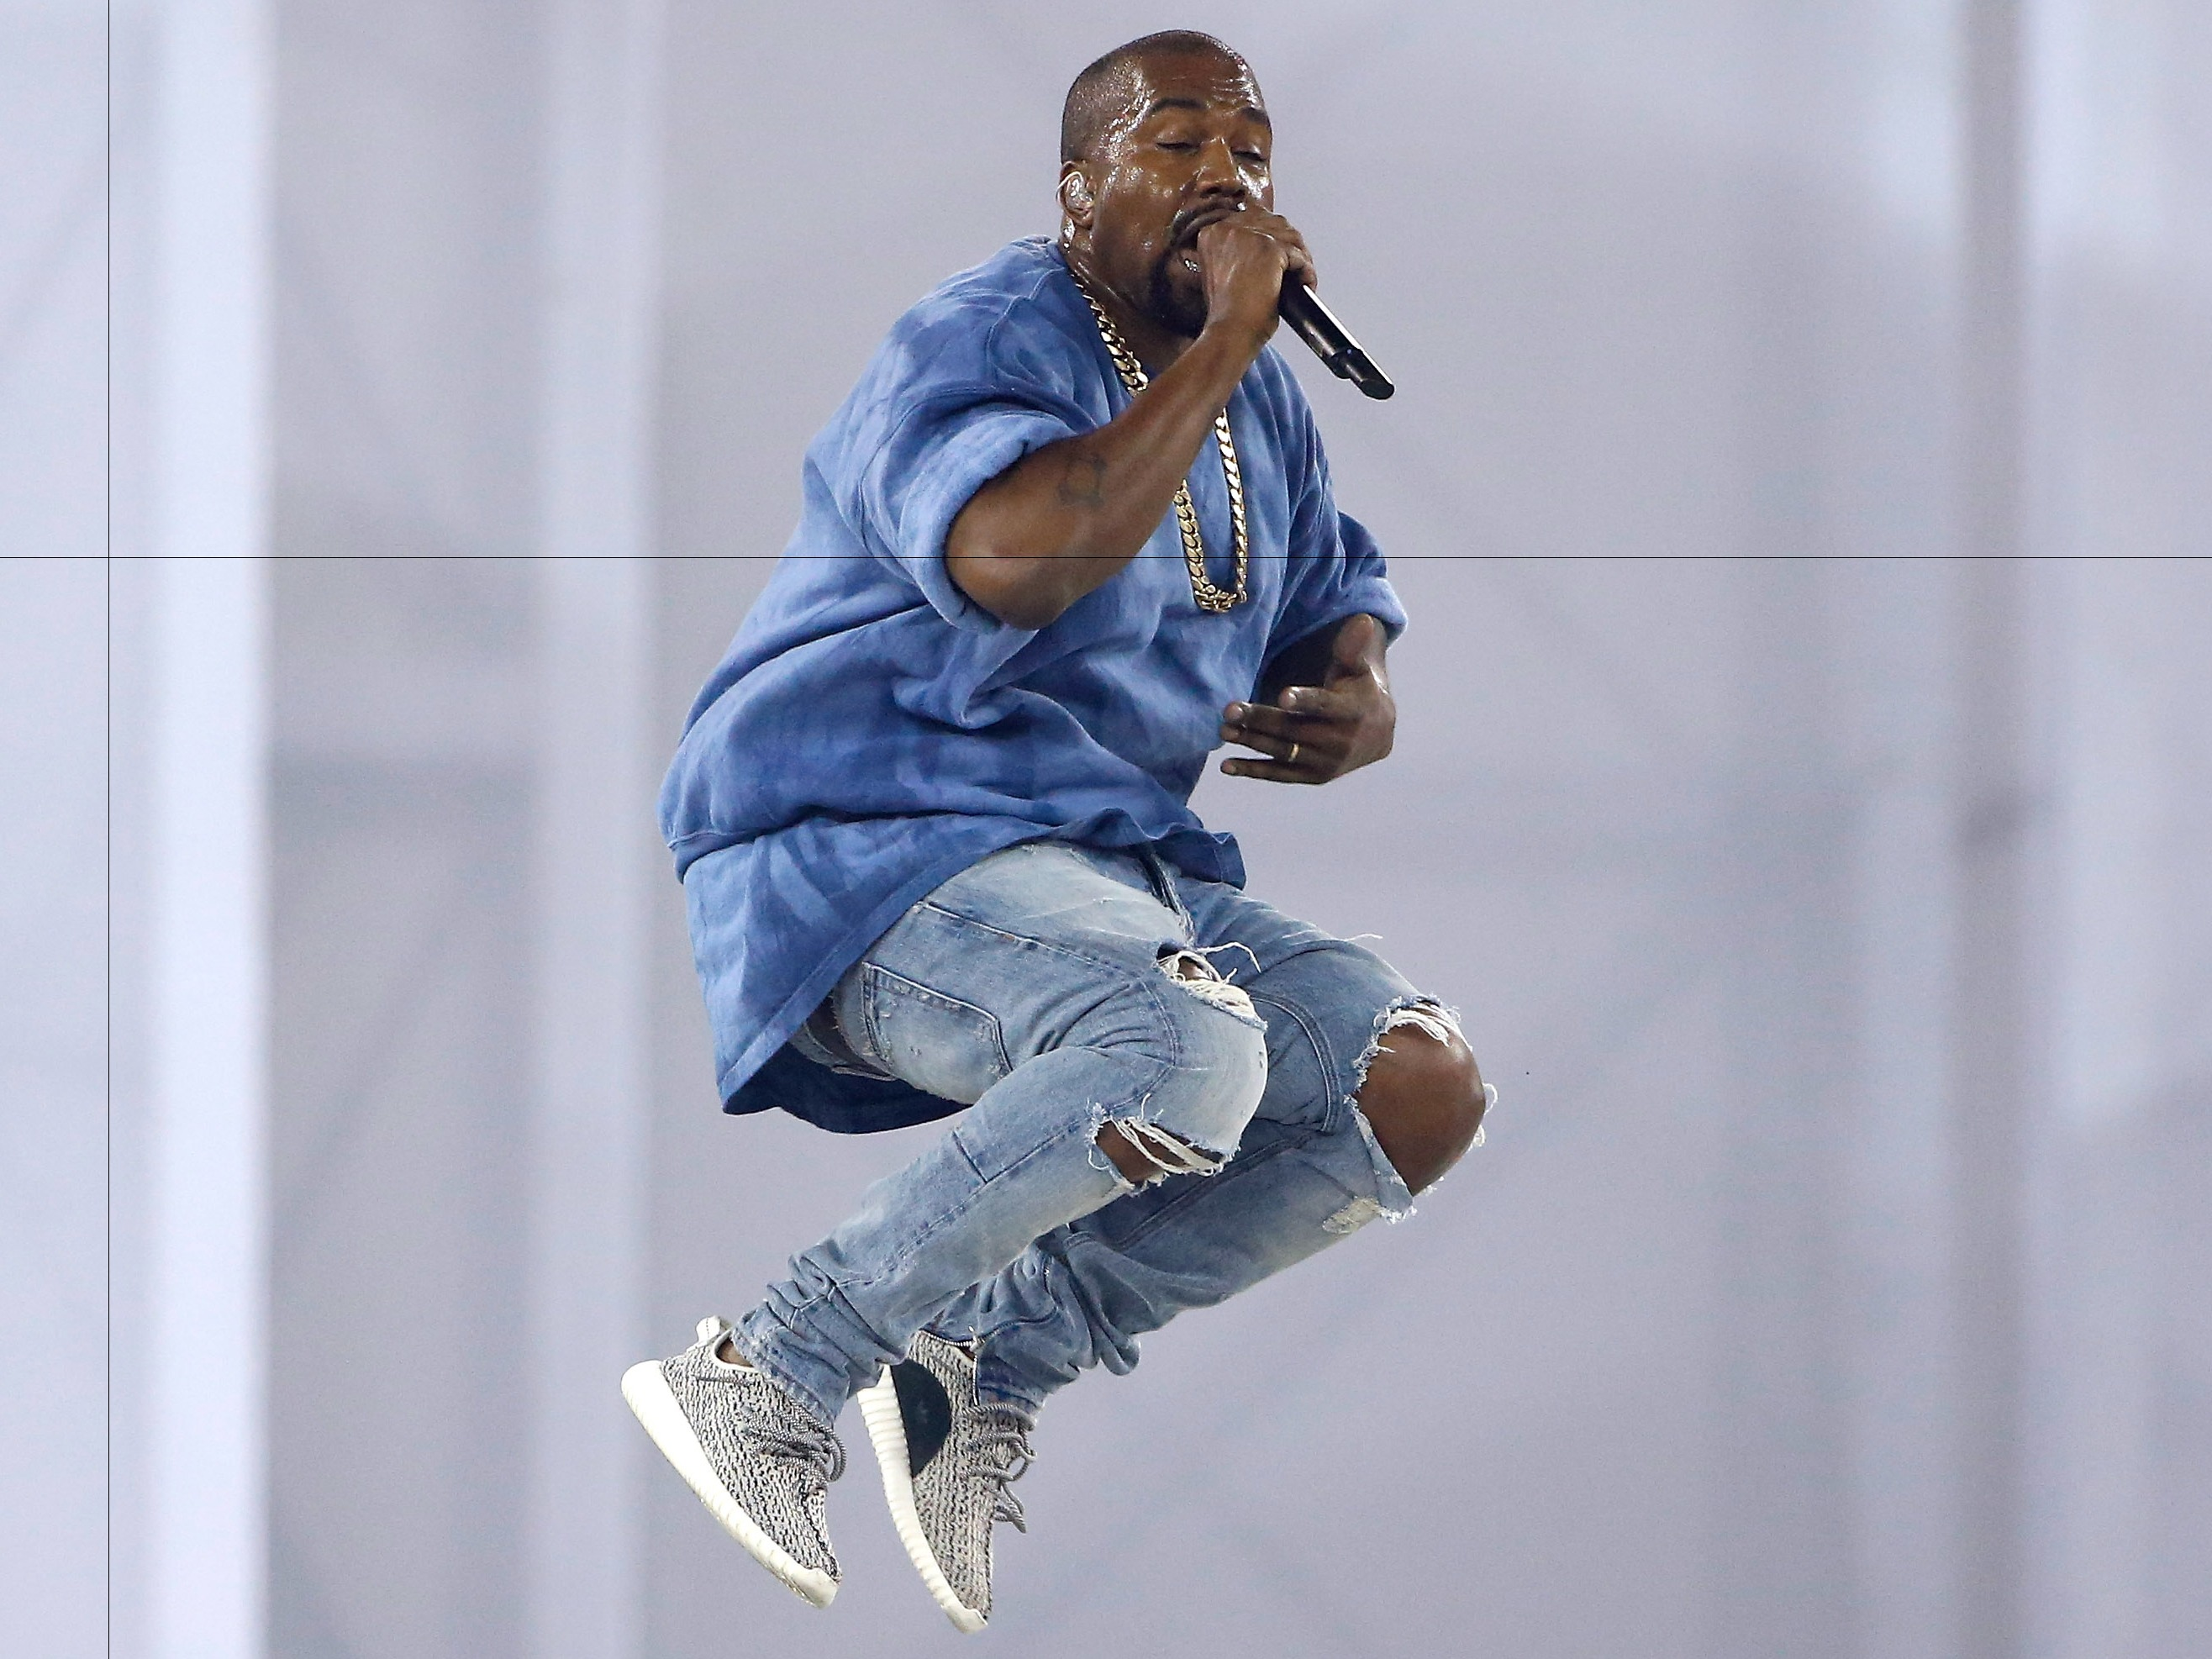 people-are-going-nuts-after-kanye-wests-new-adidas-sneaker-line-immediately-sells-out